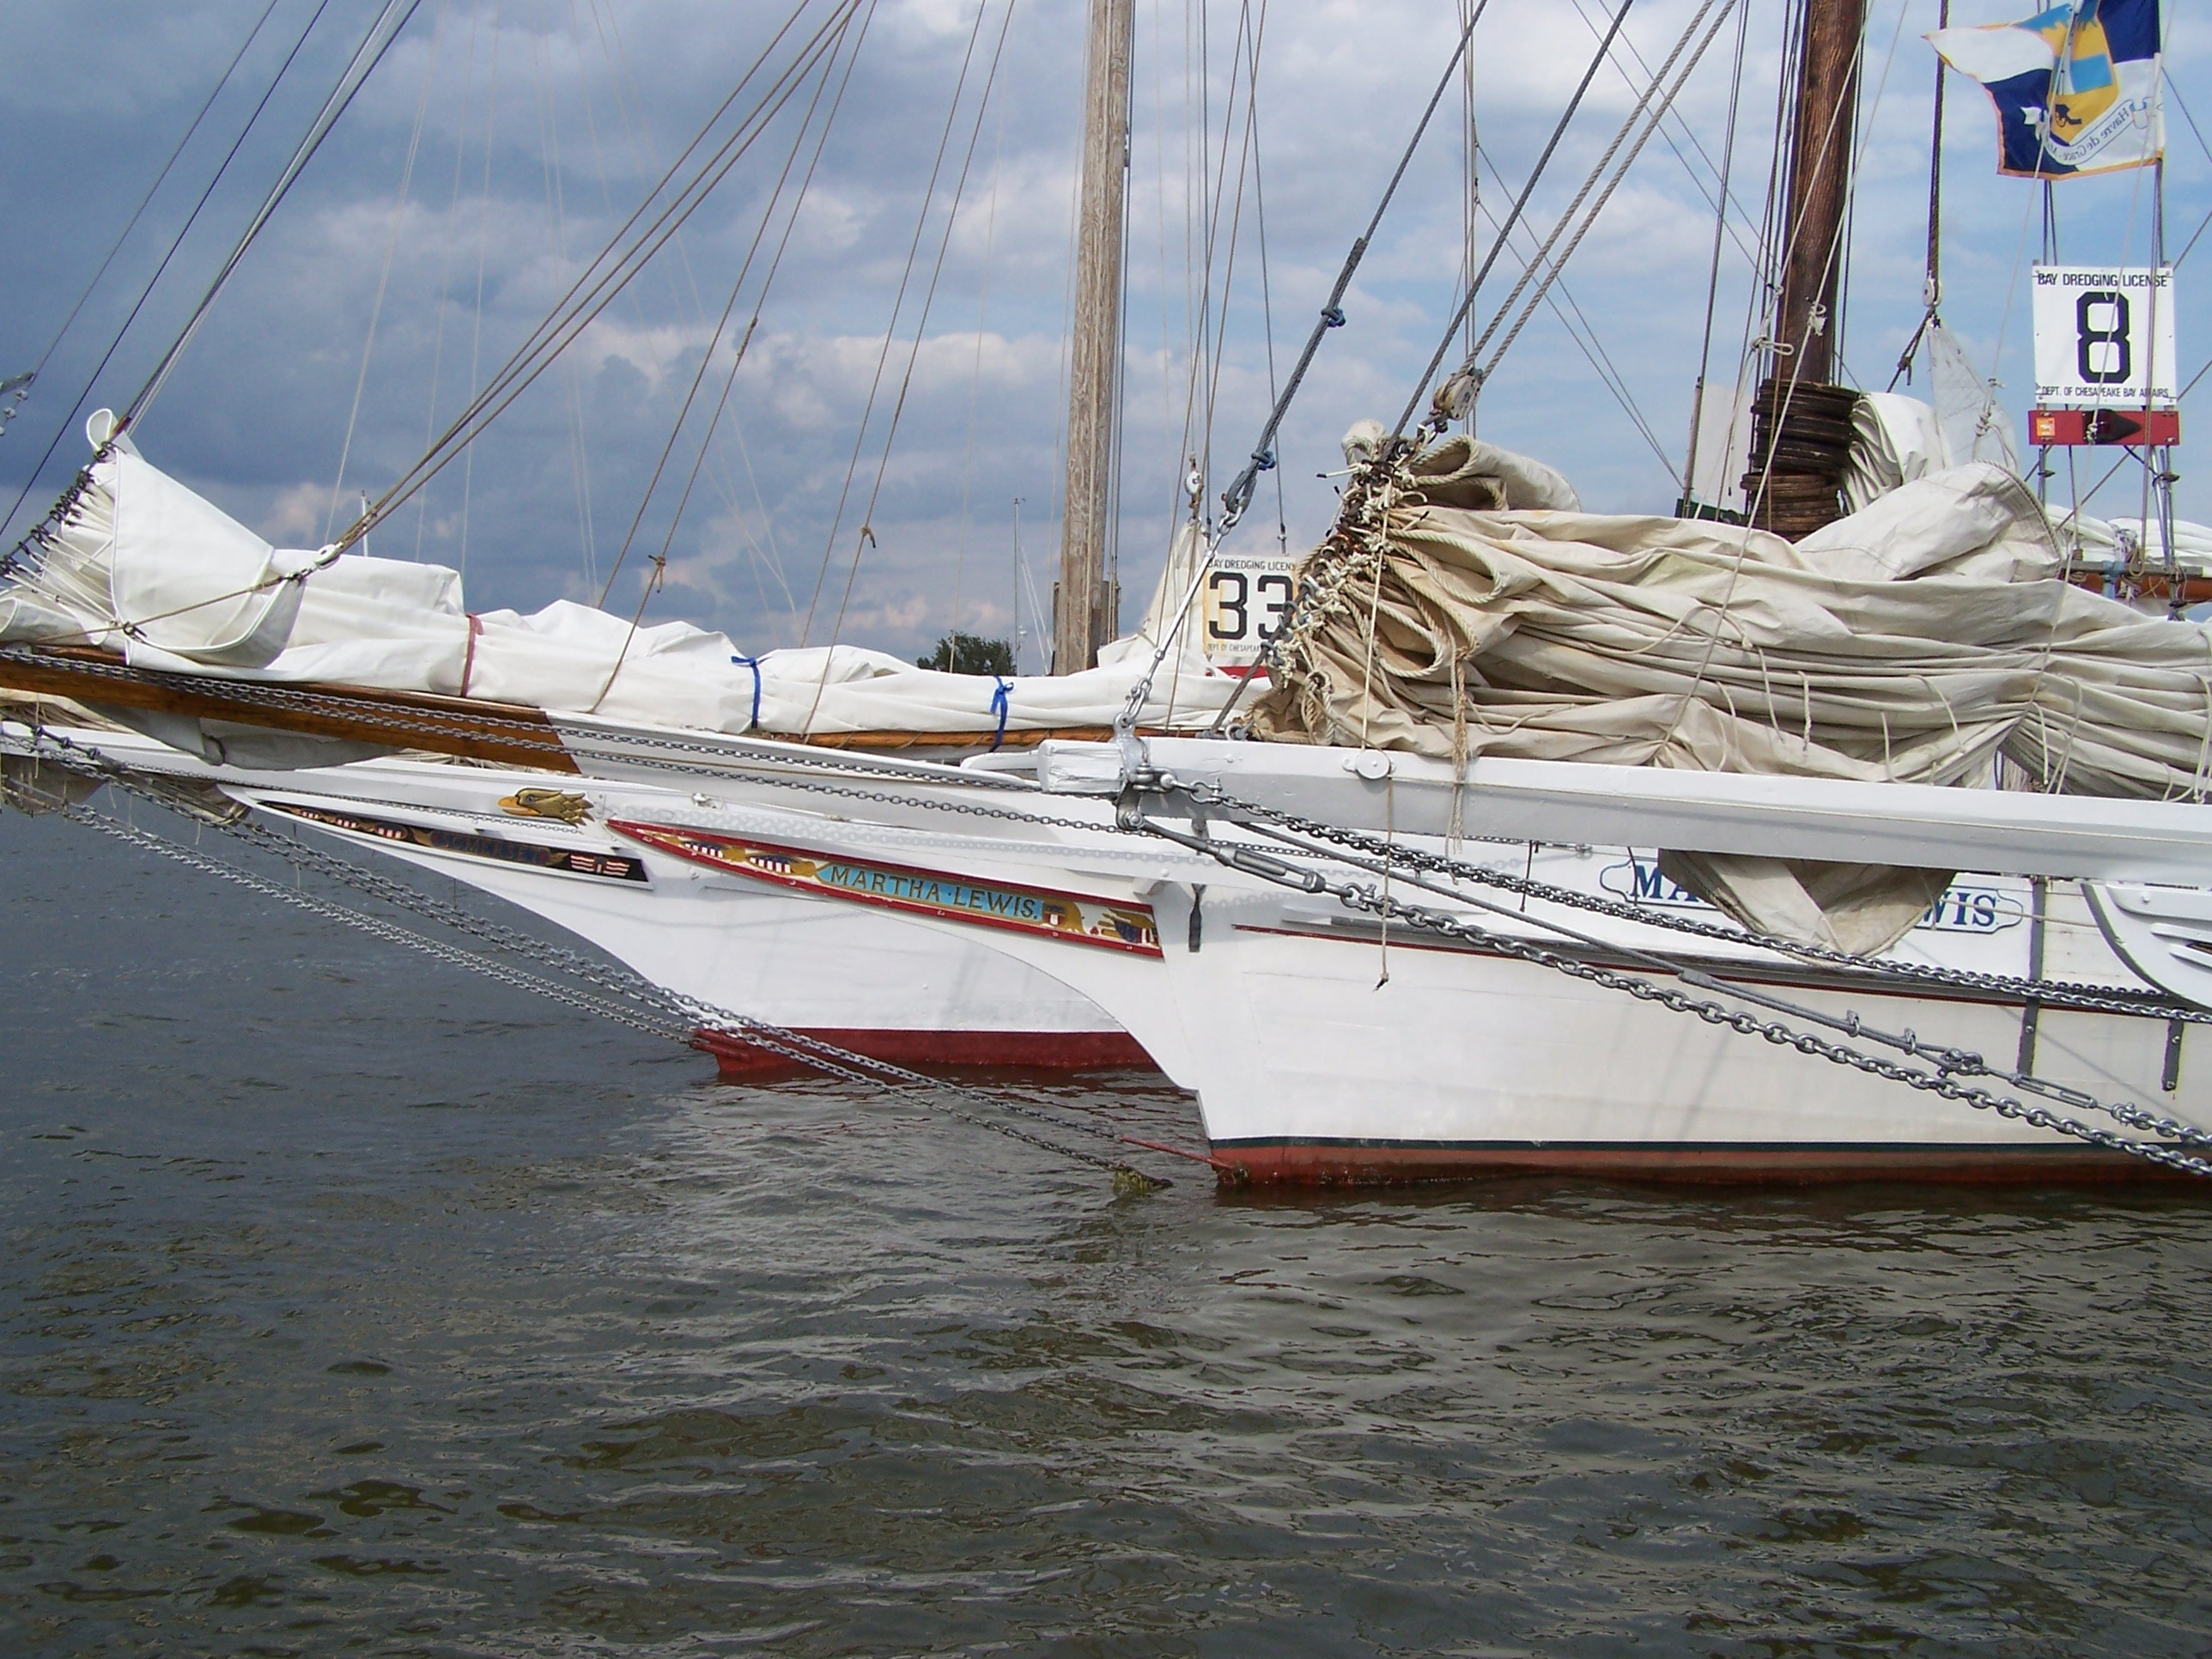 Donate & Support the Skipjack Nathan of Dorchester